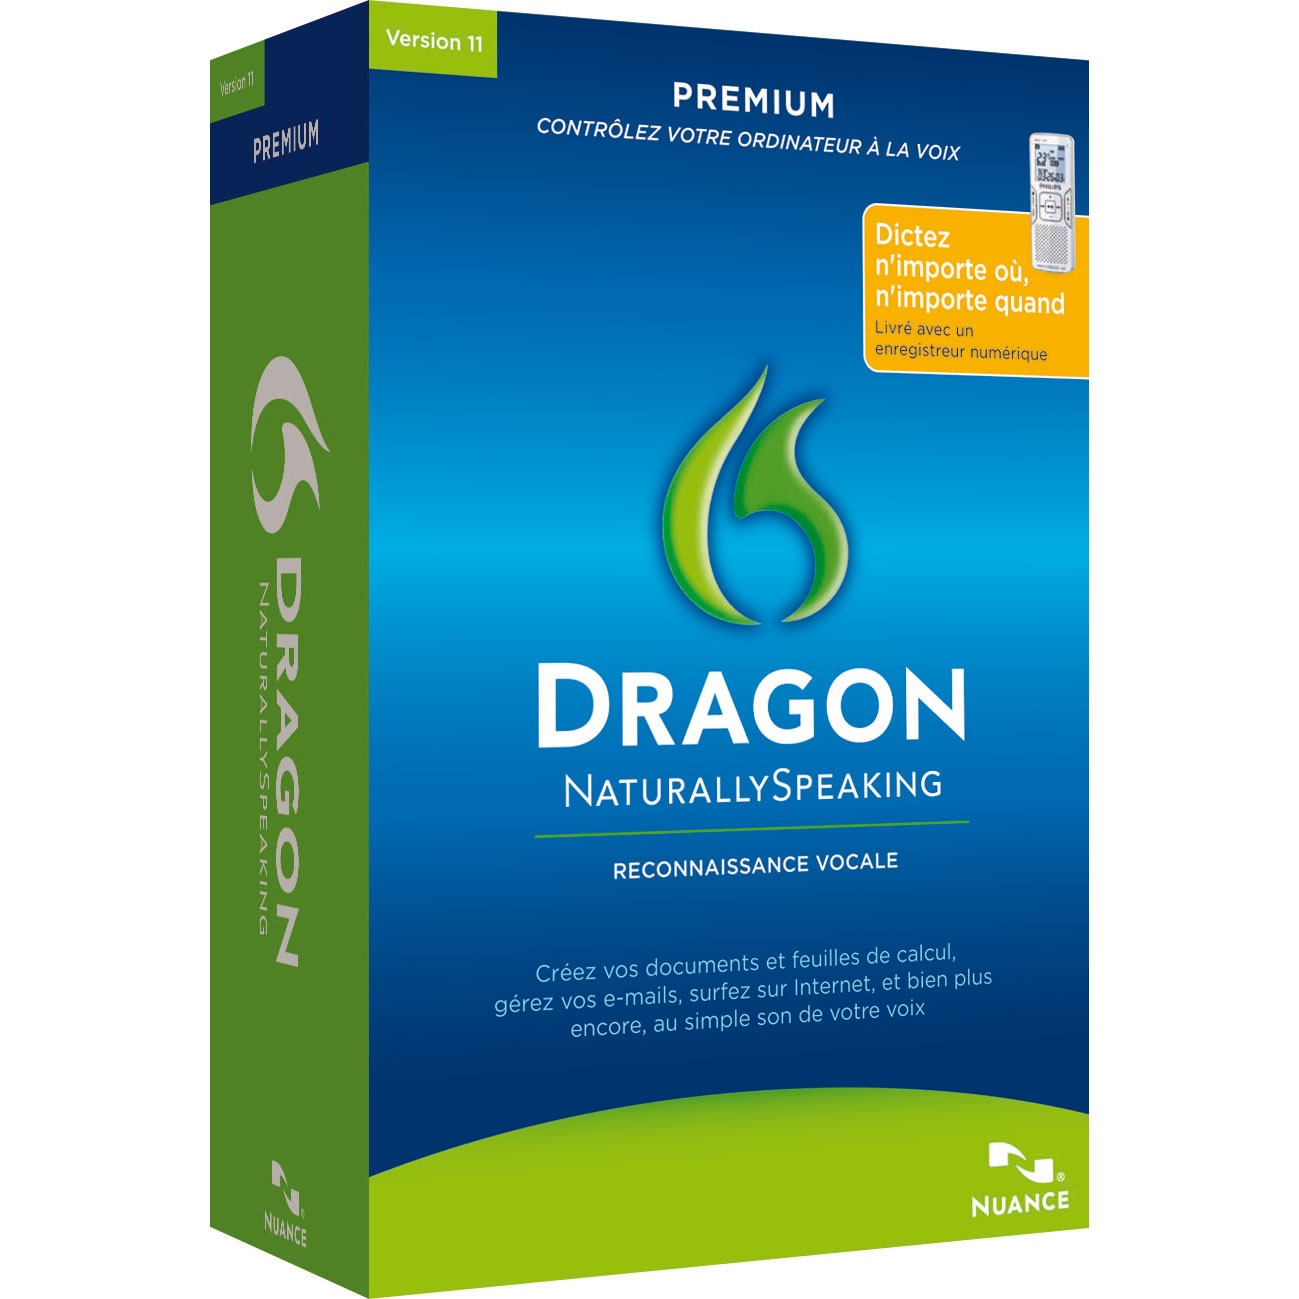 nuance dragon naturallyspeaking 11 premium mobile logiciel bureautique nuance sur. Black Bedroom Furniture Sets. Home Design Ideas